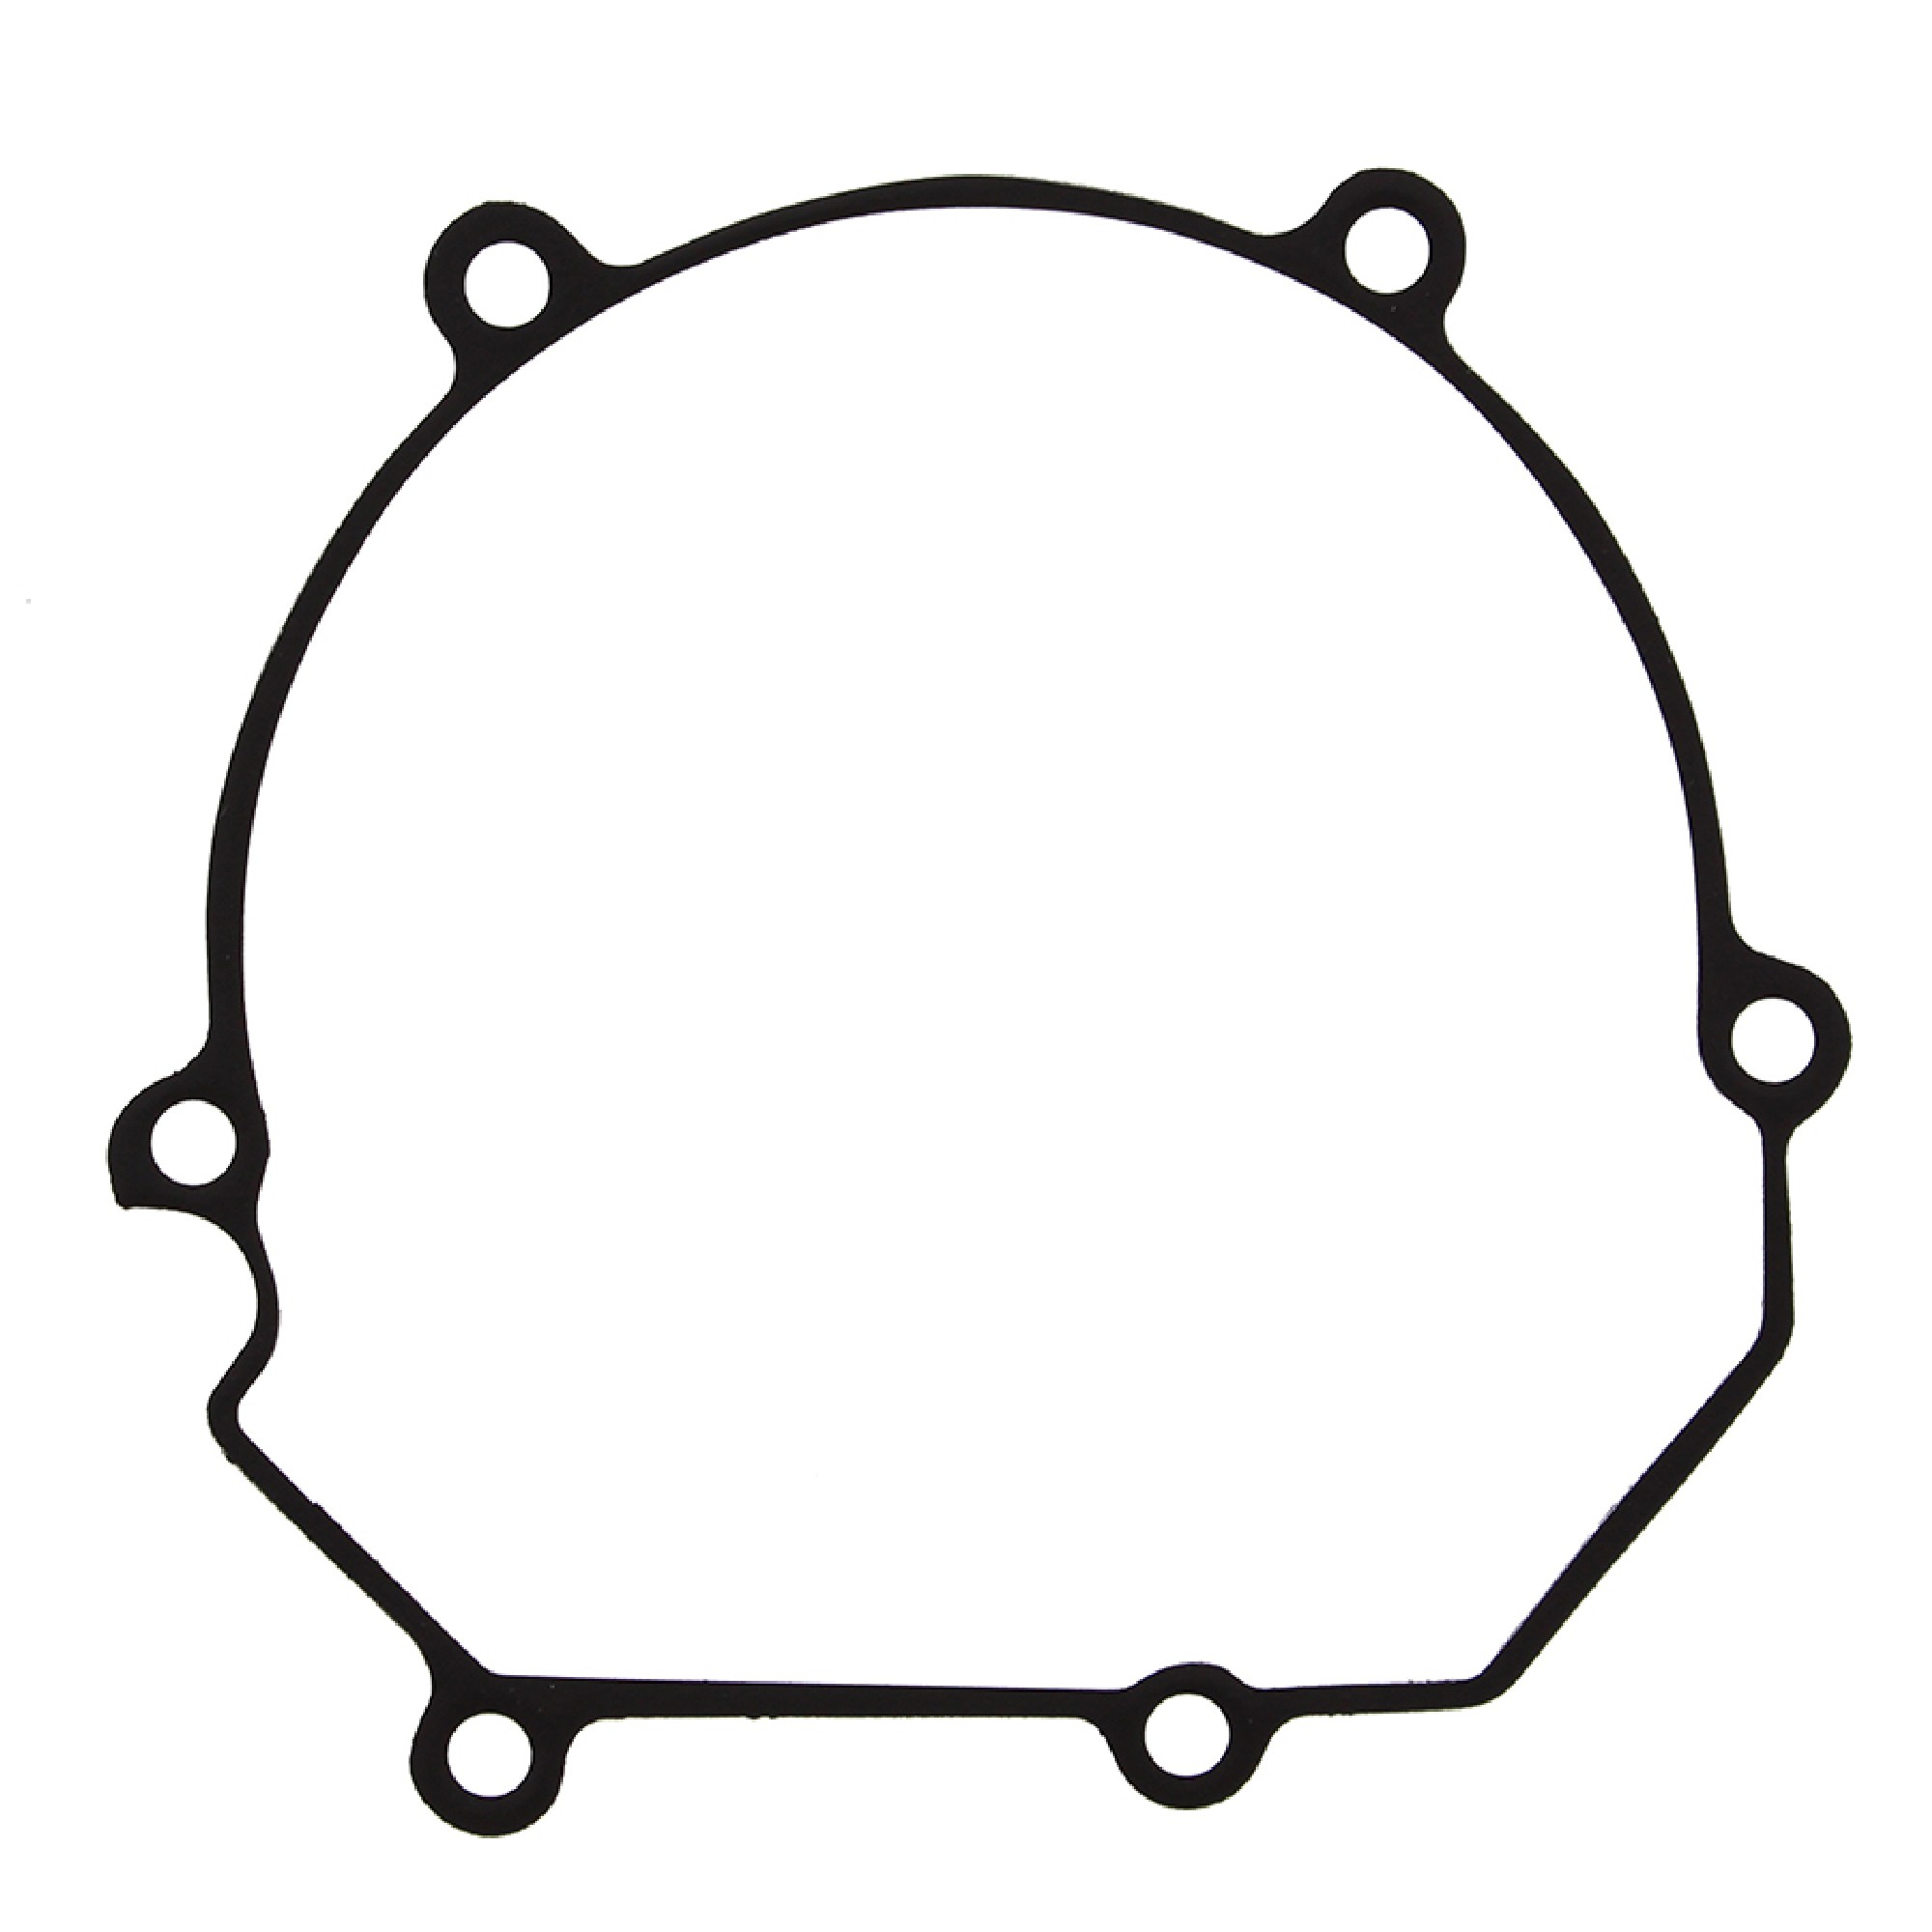 New Winderosa Ignition Cover Gasket for Kawasaki KX 85 07